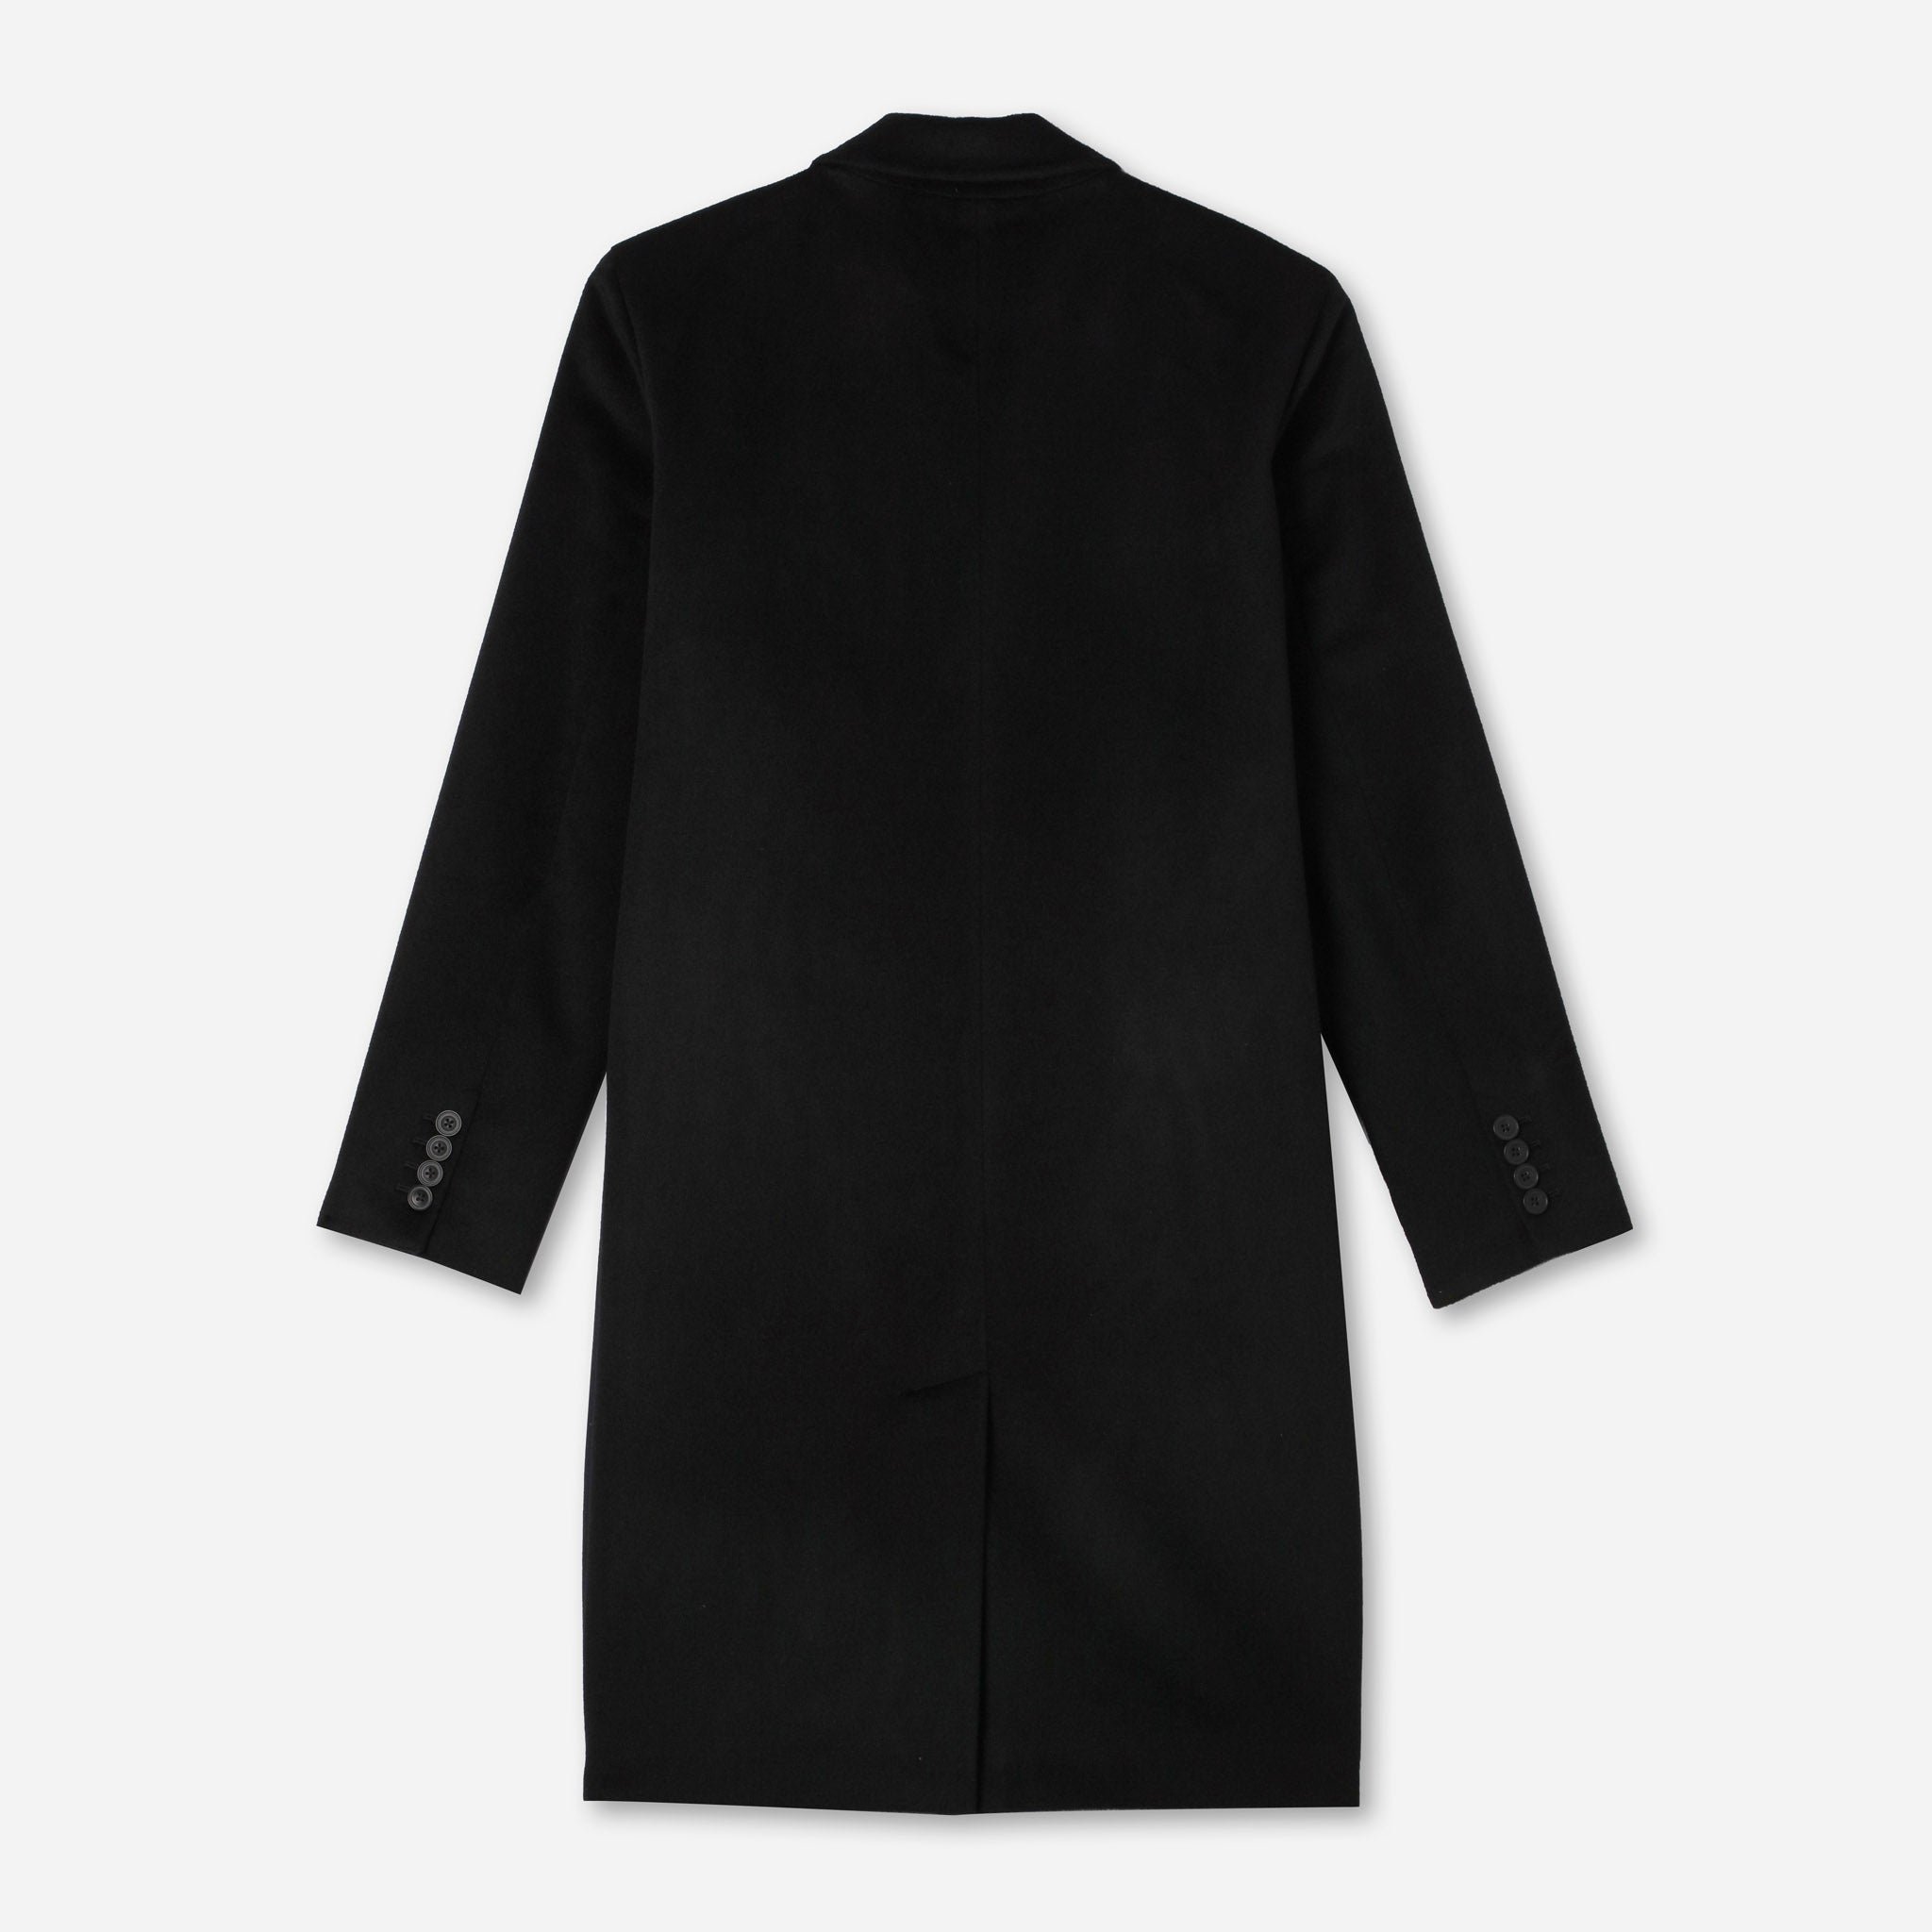 James Luxe Top Coat Loro Piana in Black